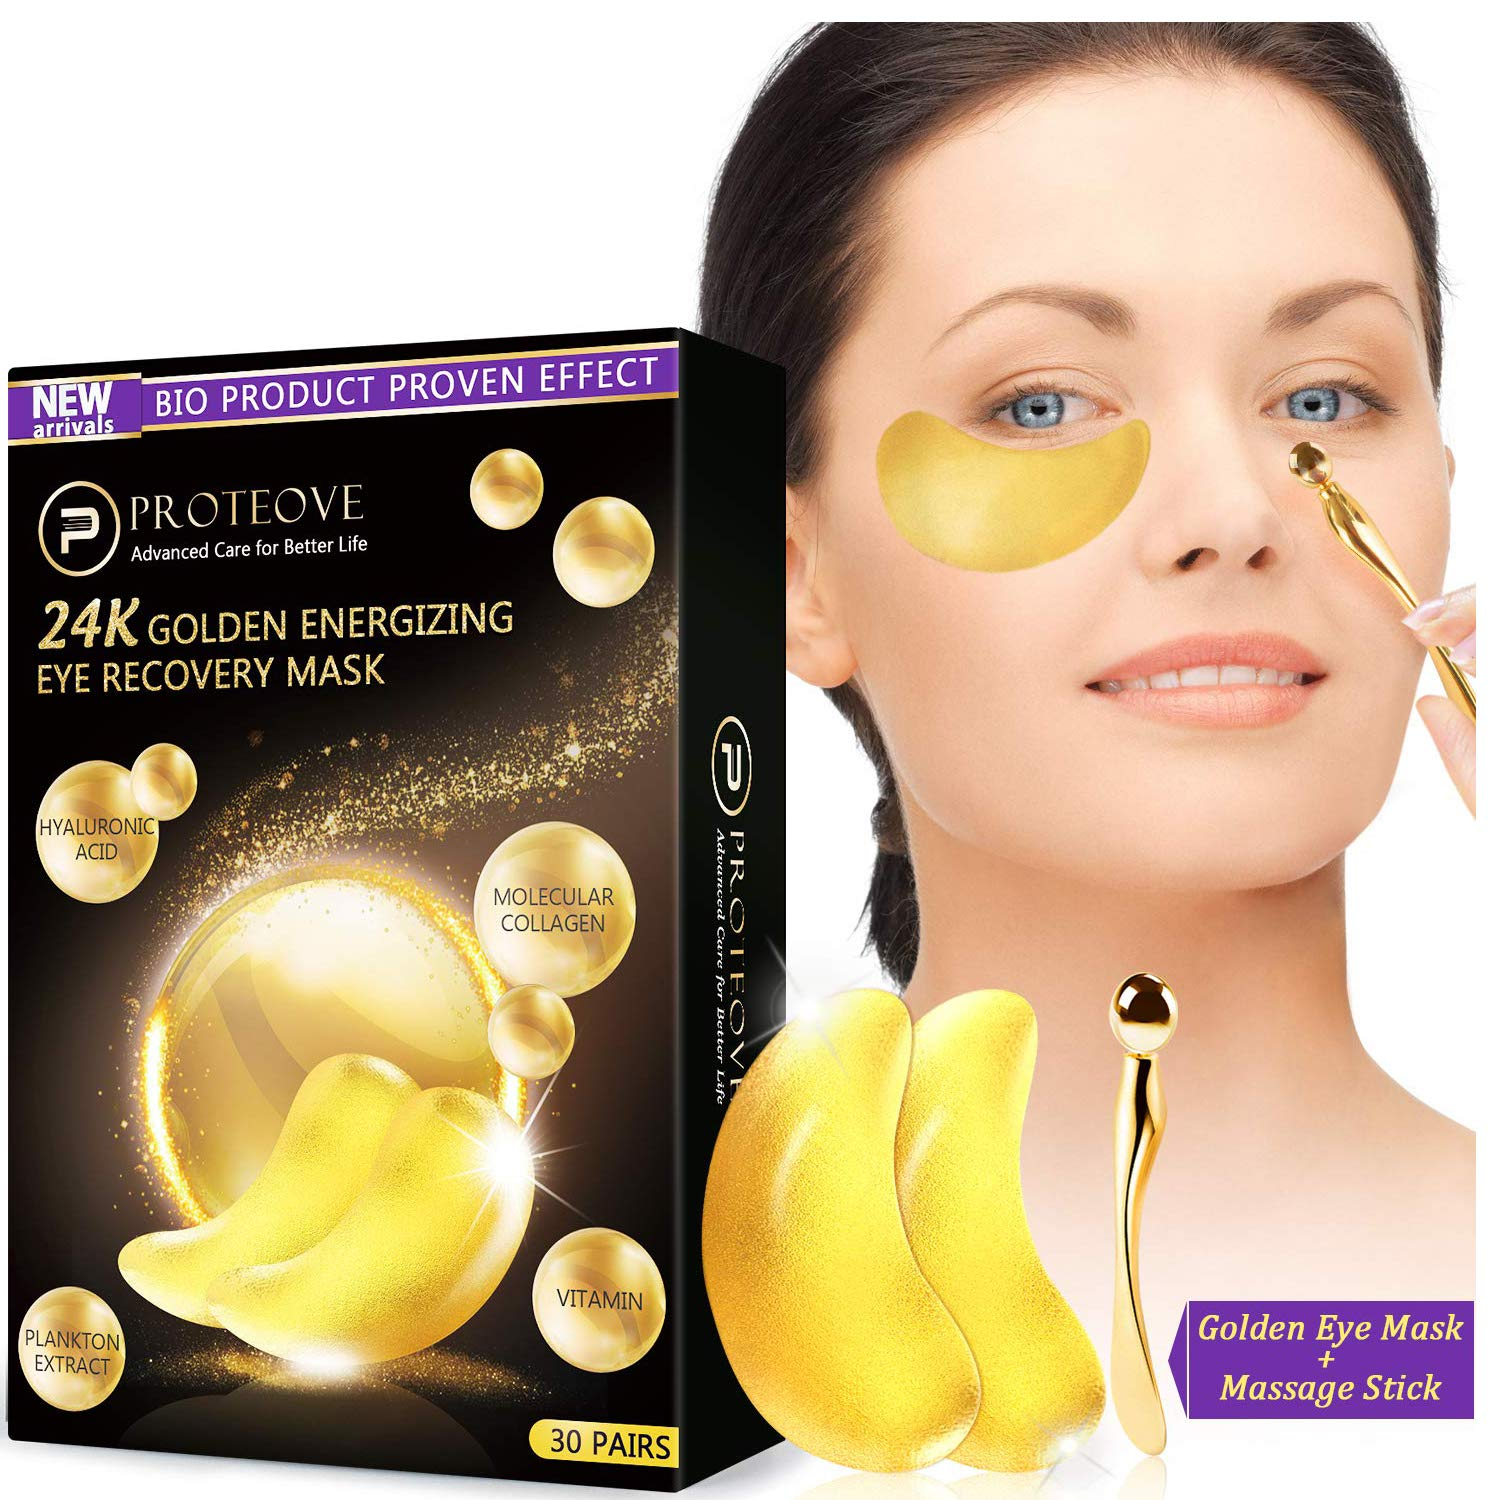 30 Pairs Gold Eye Mask - 24K Pure Nano-Active Gold Under Eye Patches, Power Crystal Gel Collagen Masks, Great for Anti Aging, Moisturizing & Reducing Dark Circles Puffiness Wrinkles by Proteove